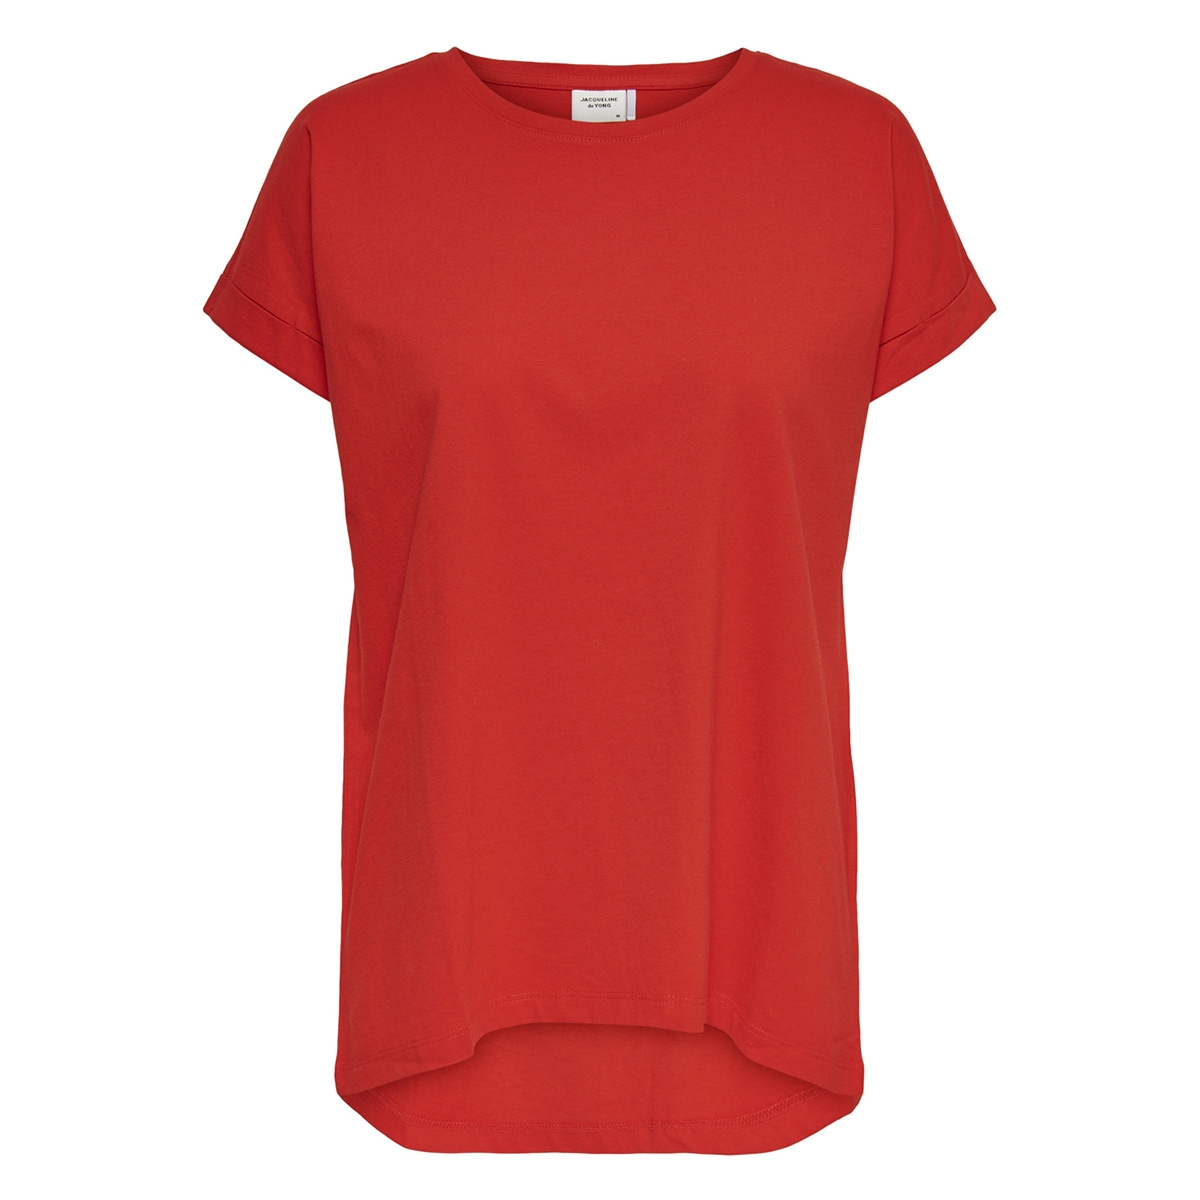 jdylouisa s/s fold up top jrs noos 15157925 jacqueline de yong t-shirt fiery red